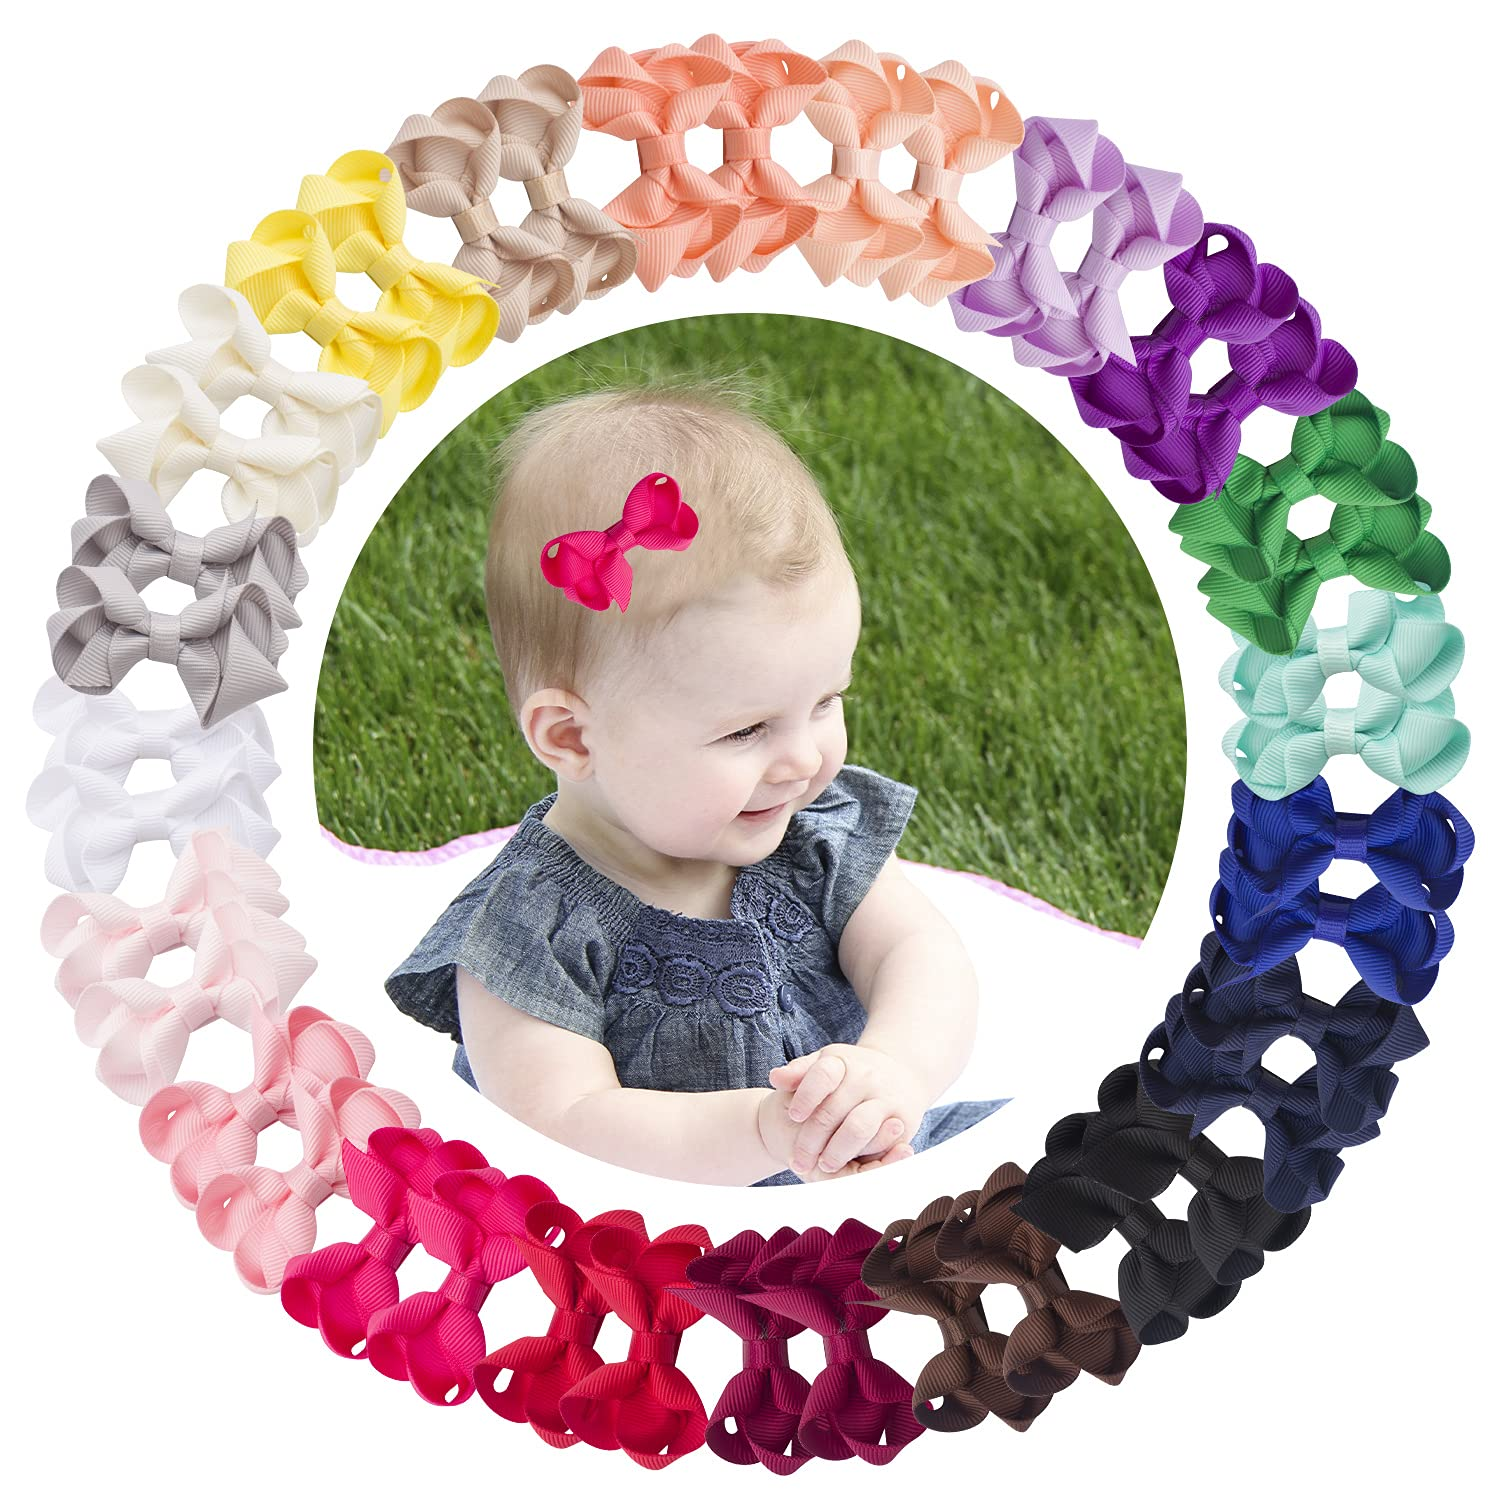 VINOBOW Ranking TOP8 40Piece 2Inch Small Grosgrain Hair Bows Oakland Mall Clips